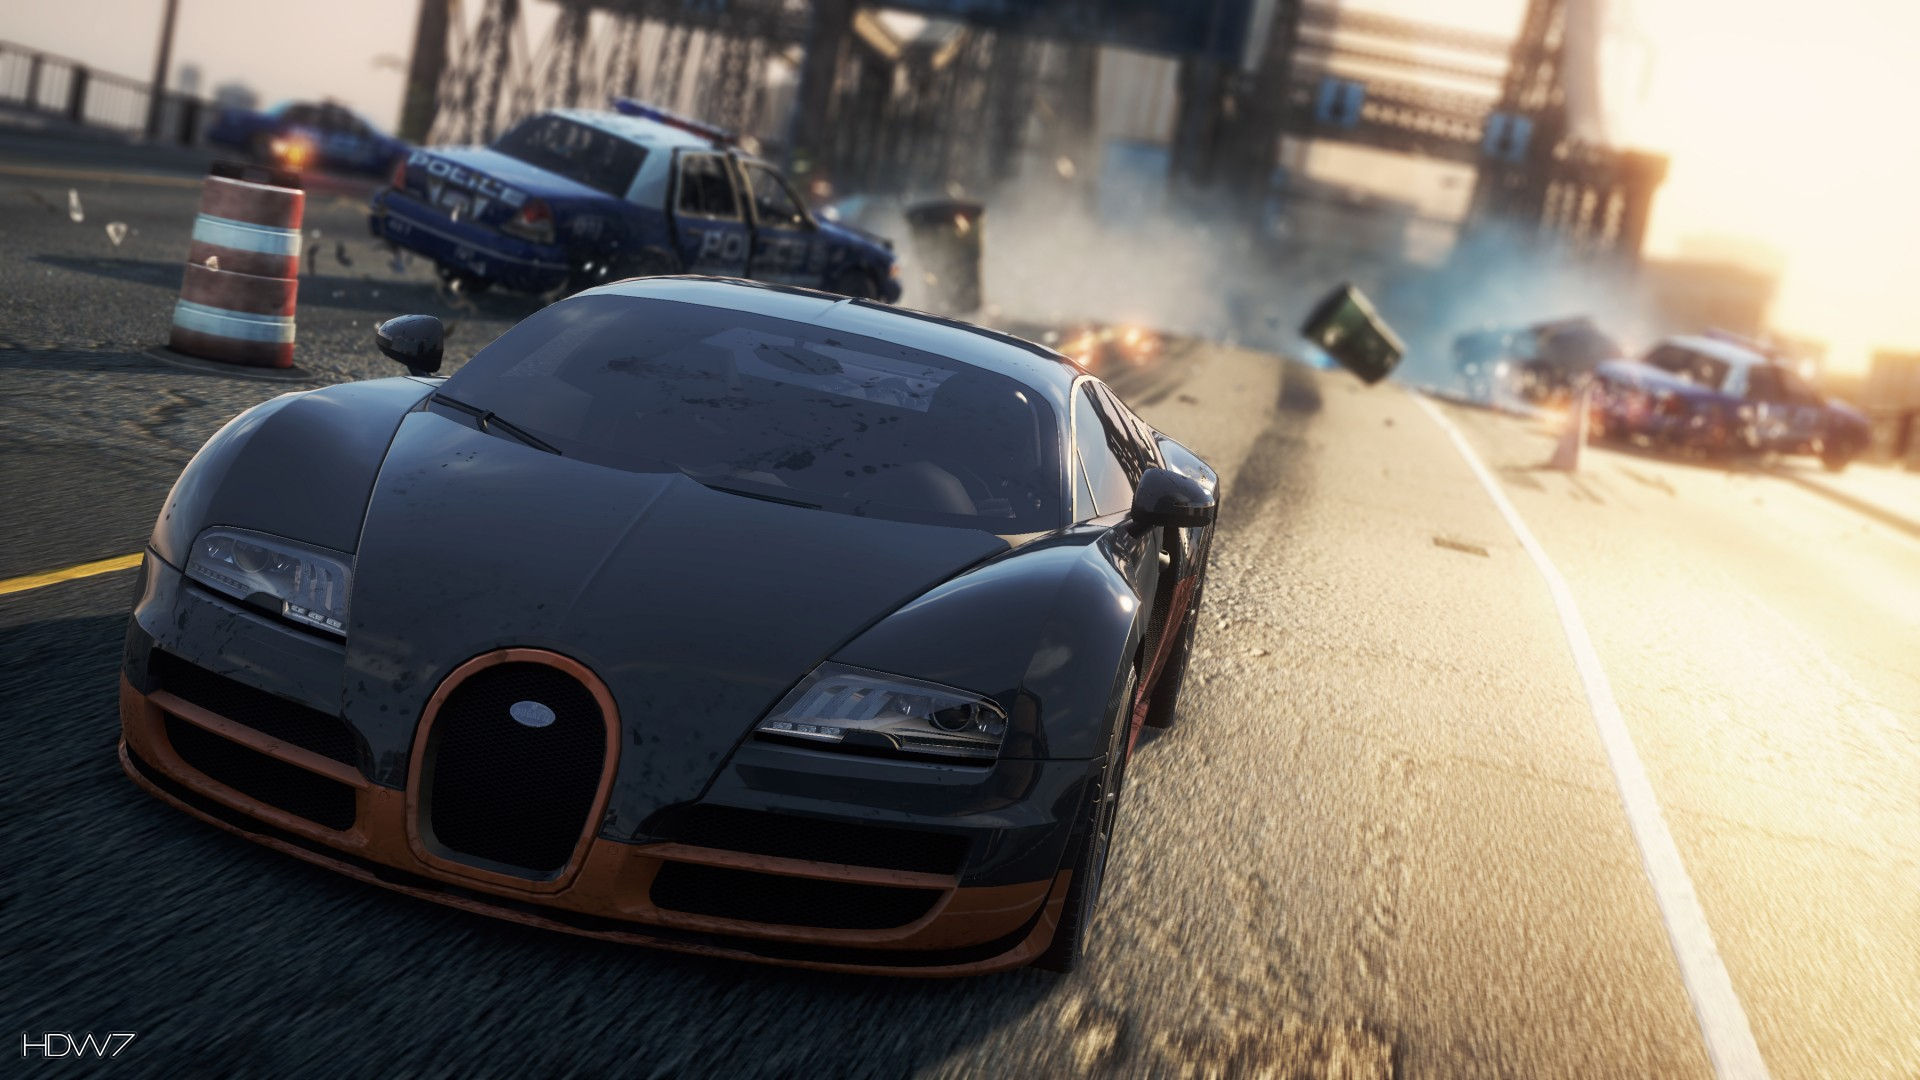 Need For Speed Most Wanted 2012 Bugatti Veyron Super Sport